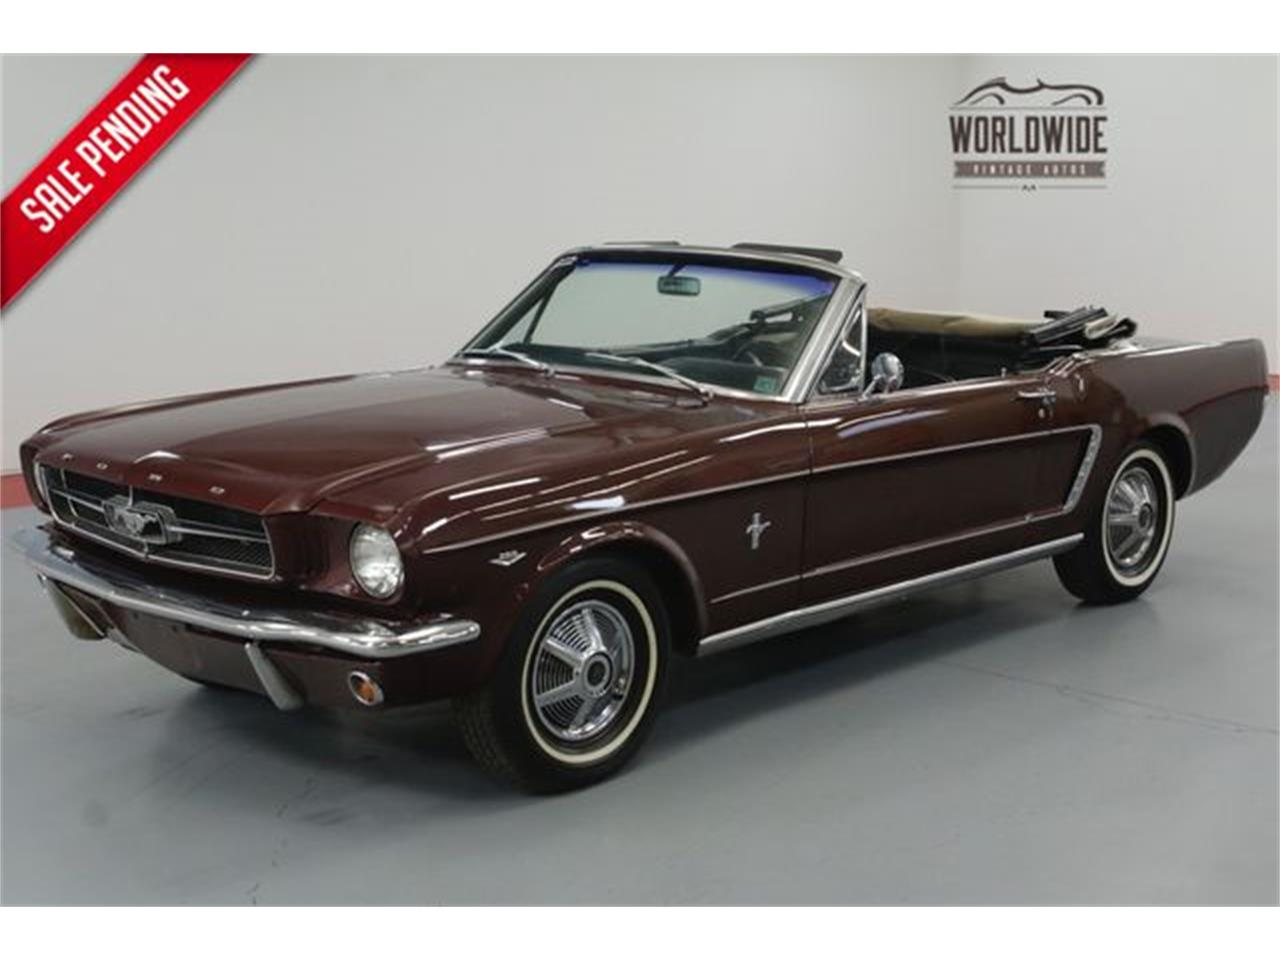 Large picture of 65 ford mustang 19900 00 p9j0